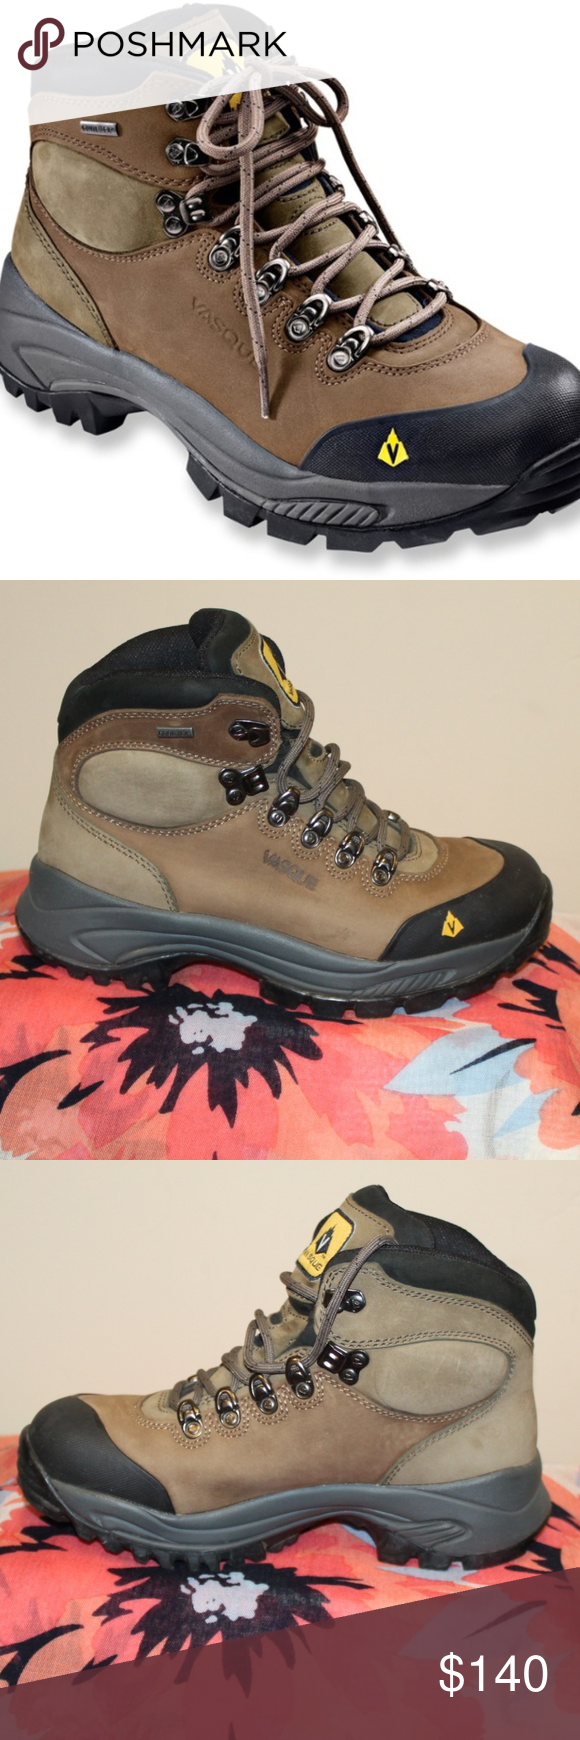 1ec69ad8eb1 Vasque Wasatch GTX Hiking Boots - Women's 8 Excellent pre-owned ...